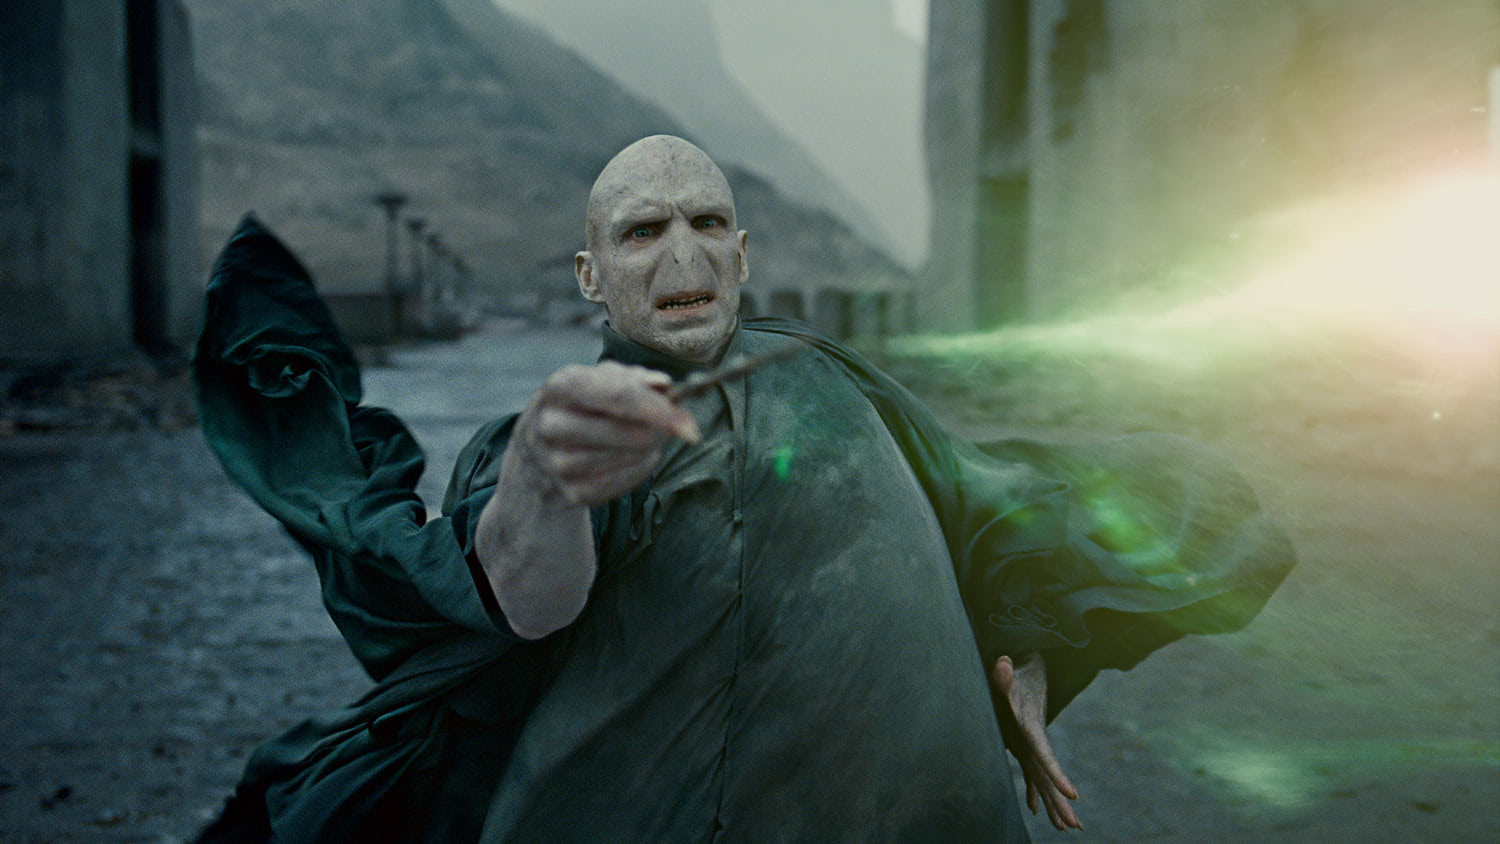 Voldemort loses the battle